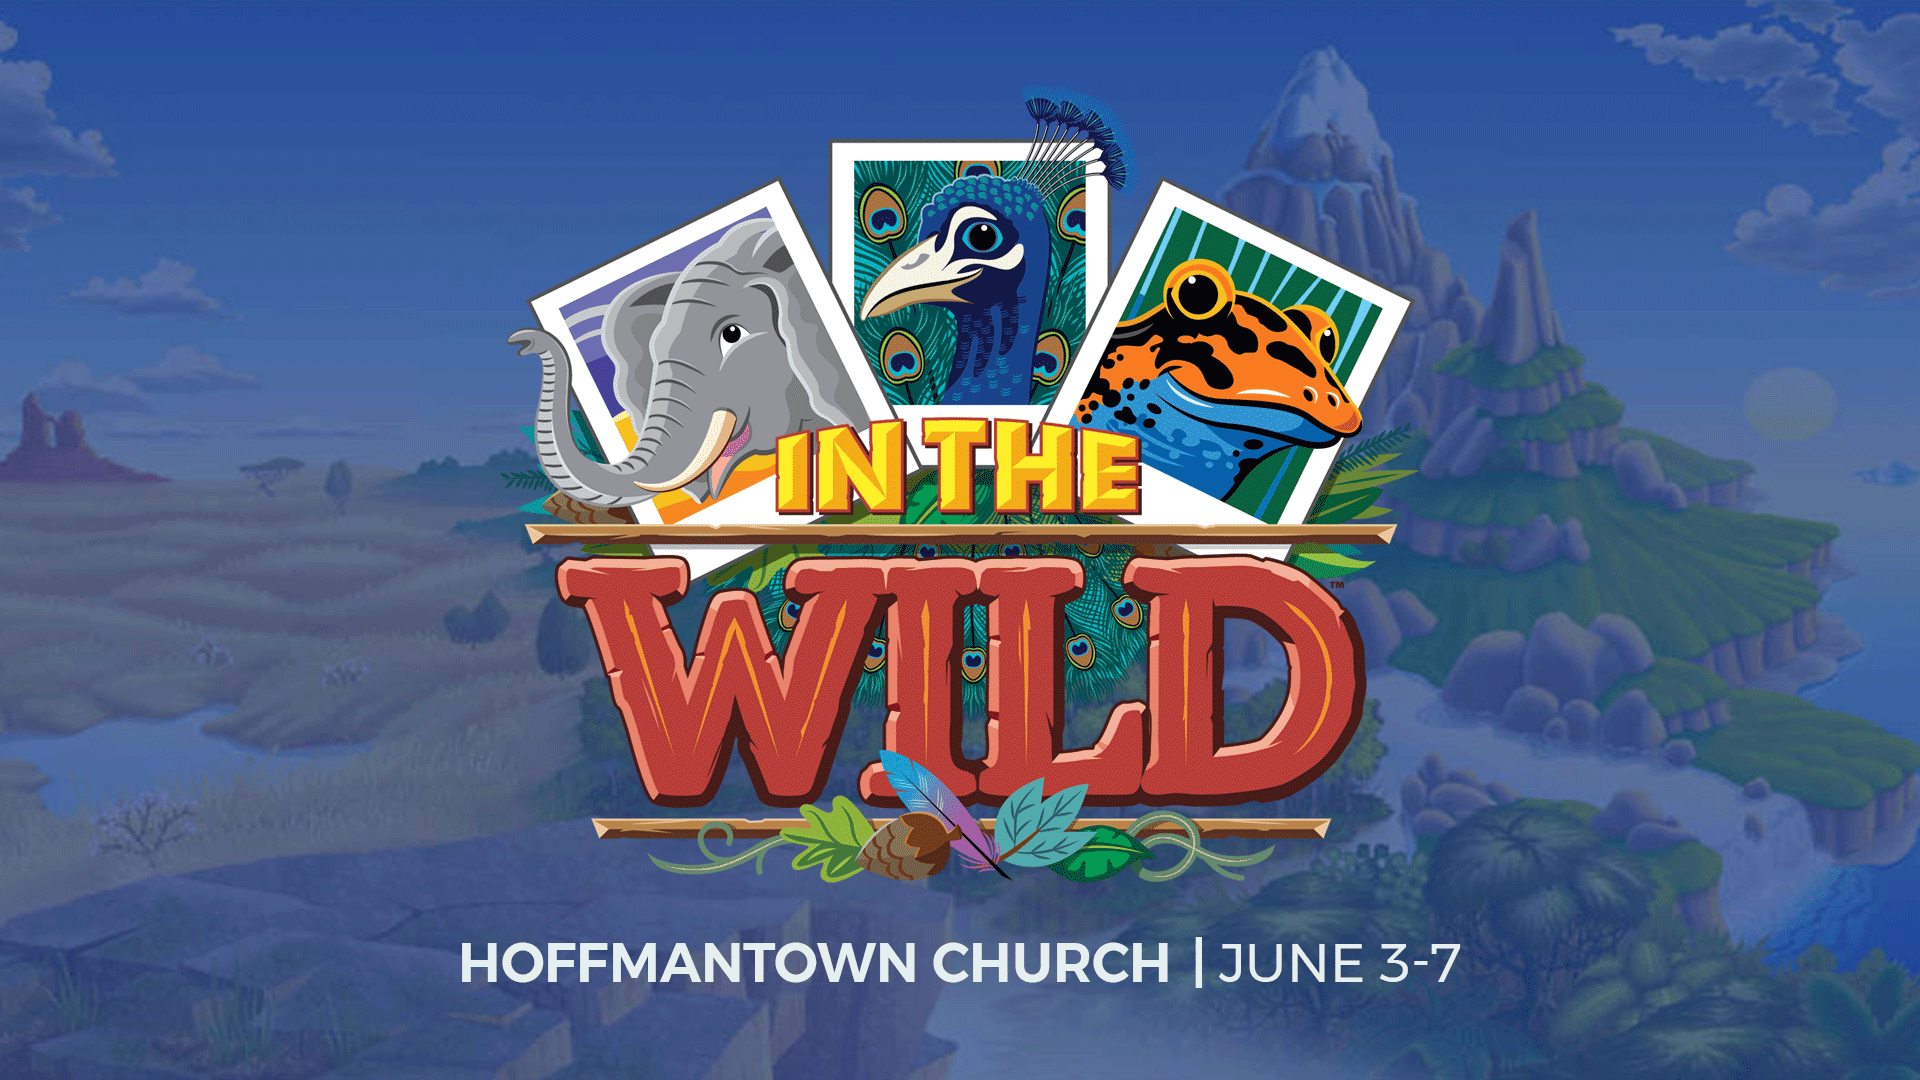 In The Wild - VBS | Hoffmantown Church